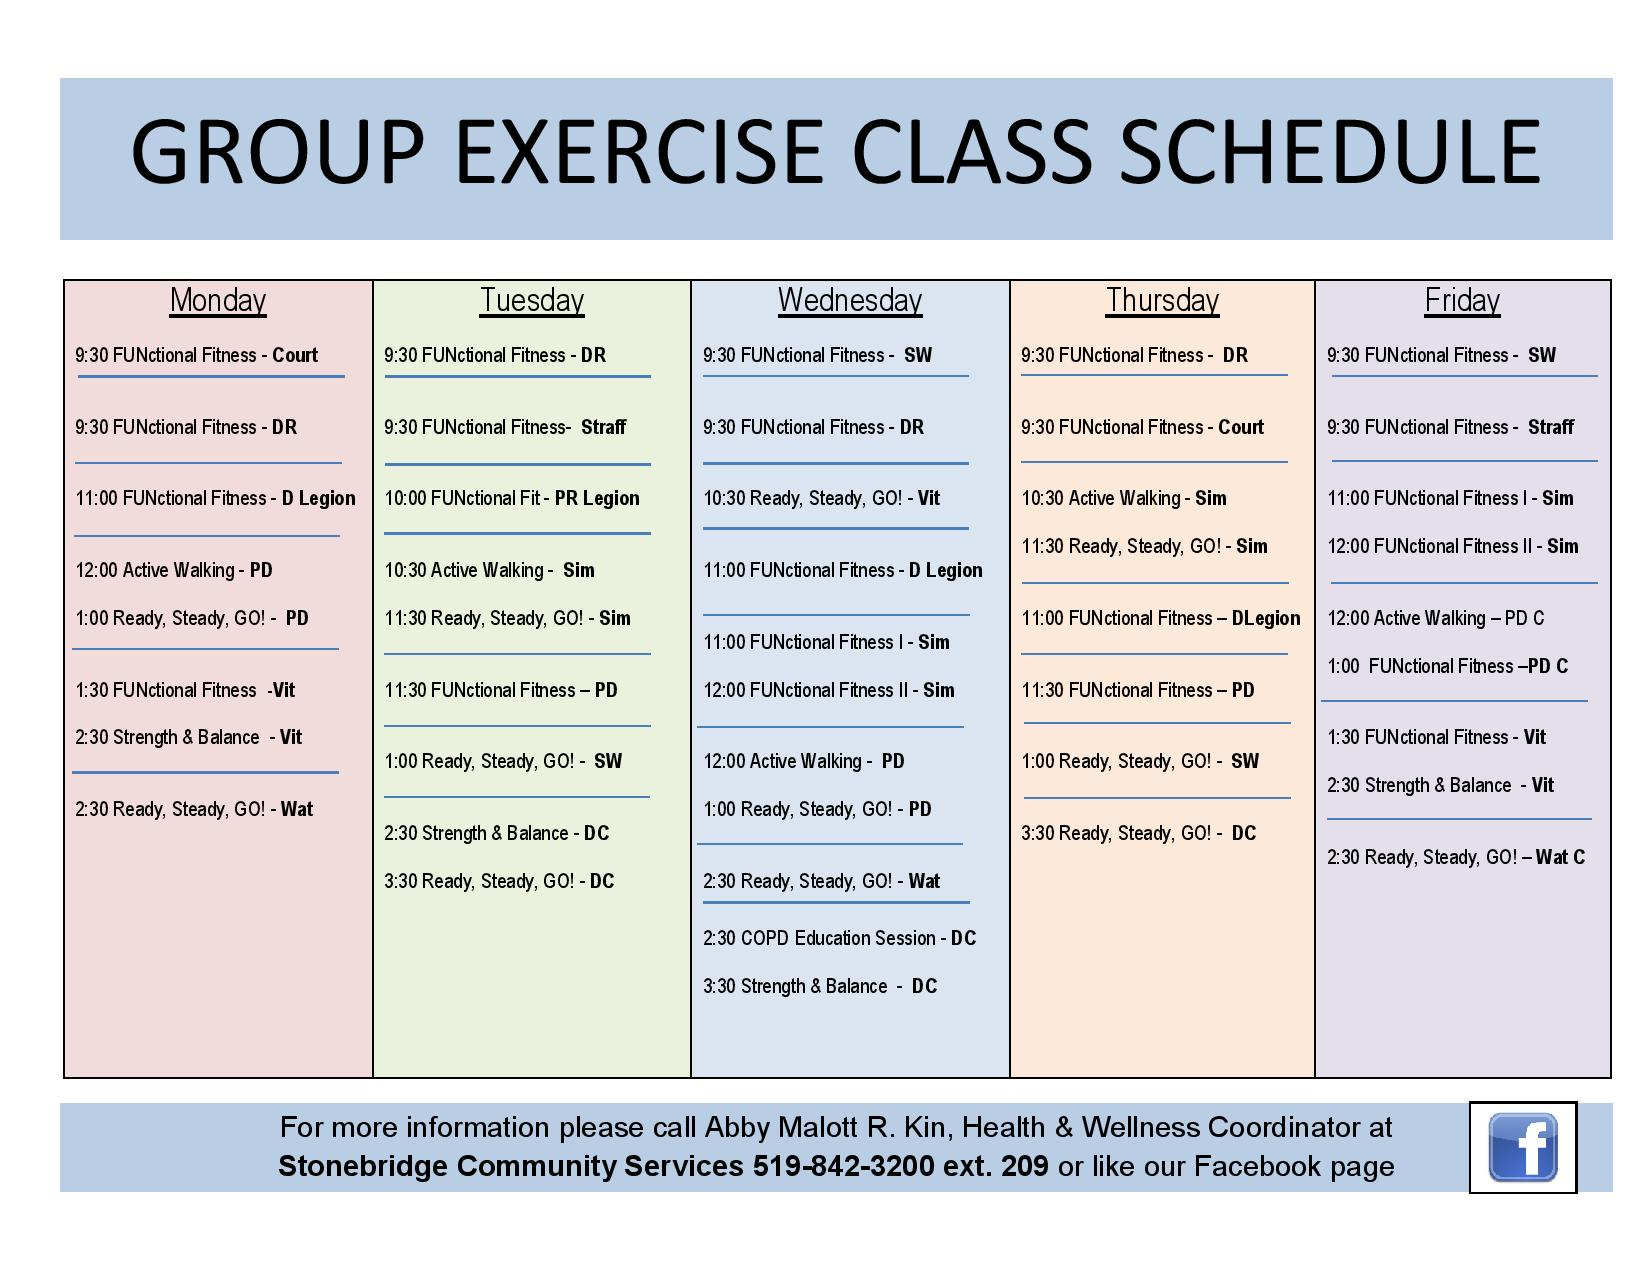 GROUP EXERCISE CLASS SCHEDULE PDF